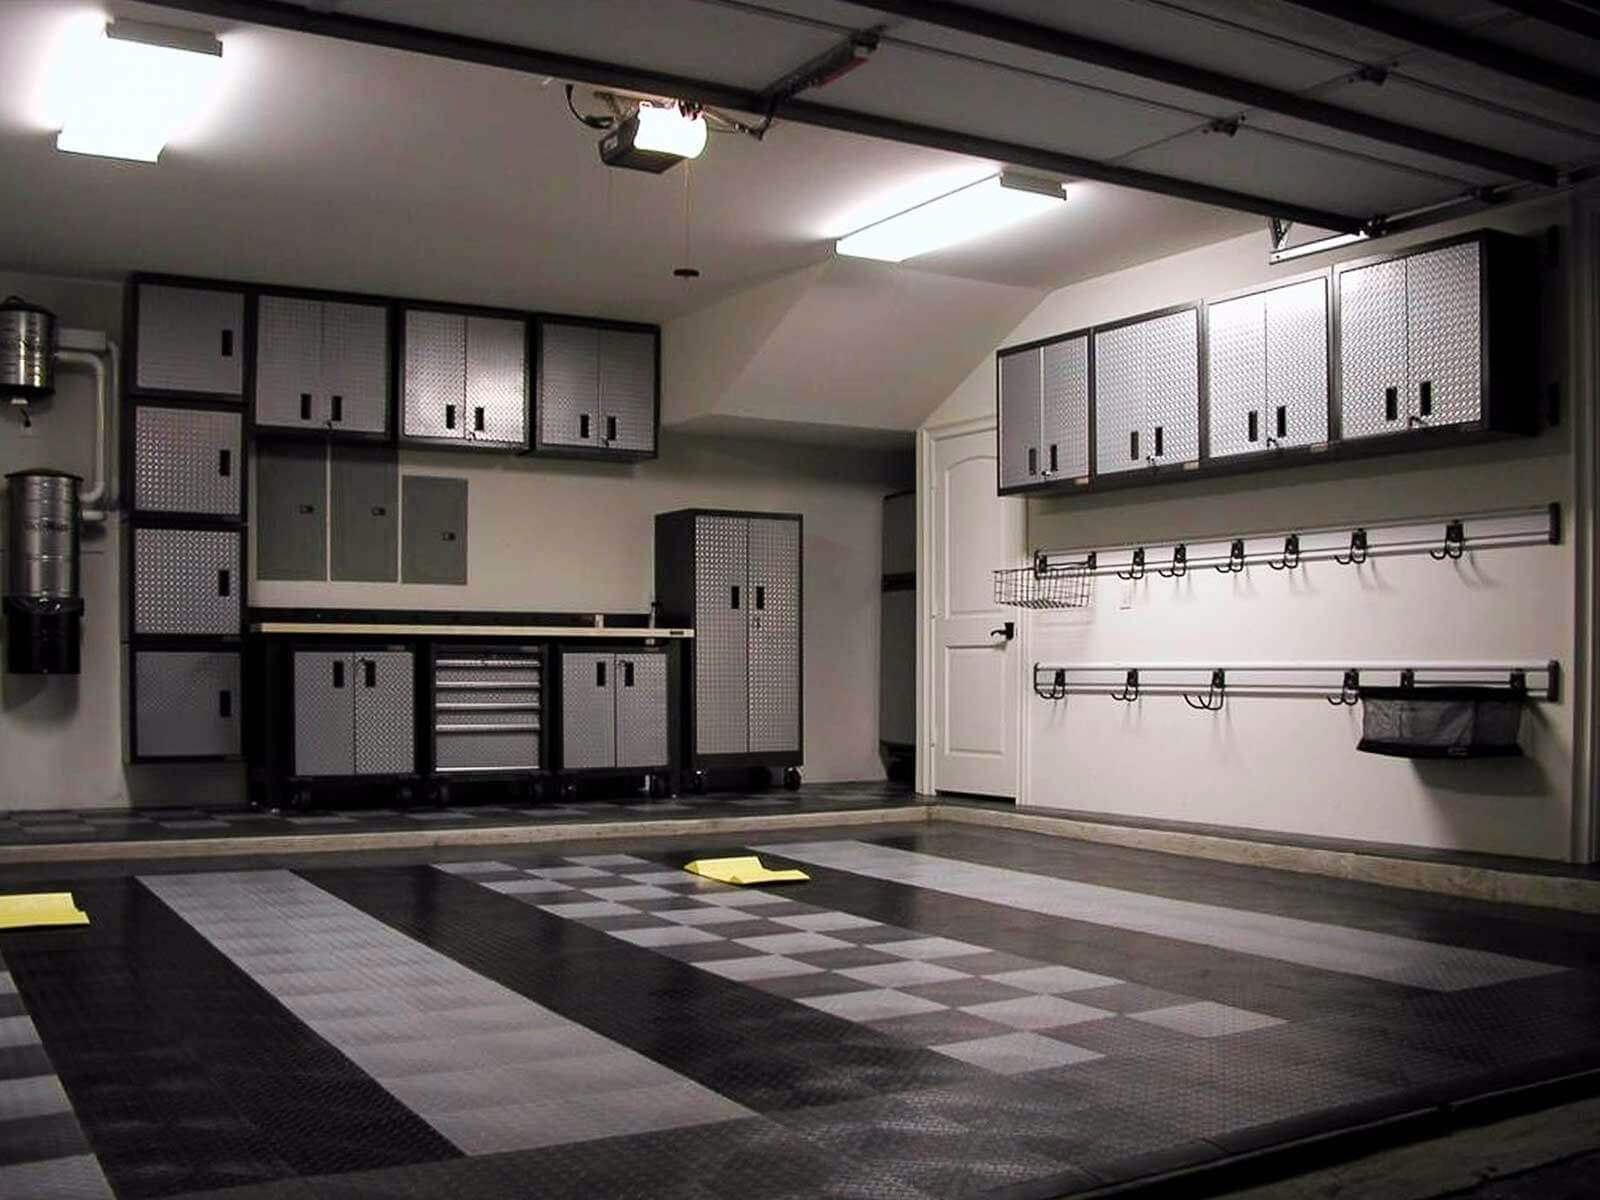 RaceDeck Diamond in black, graphite and alloy complements this monochrome garage.